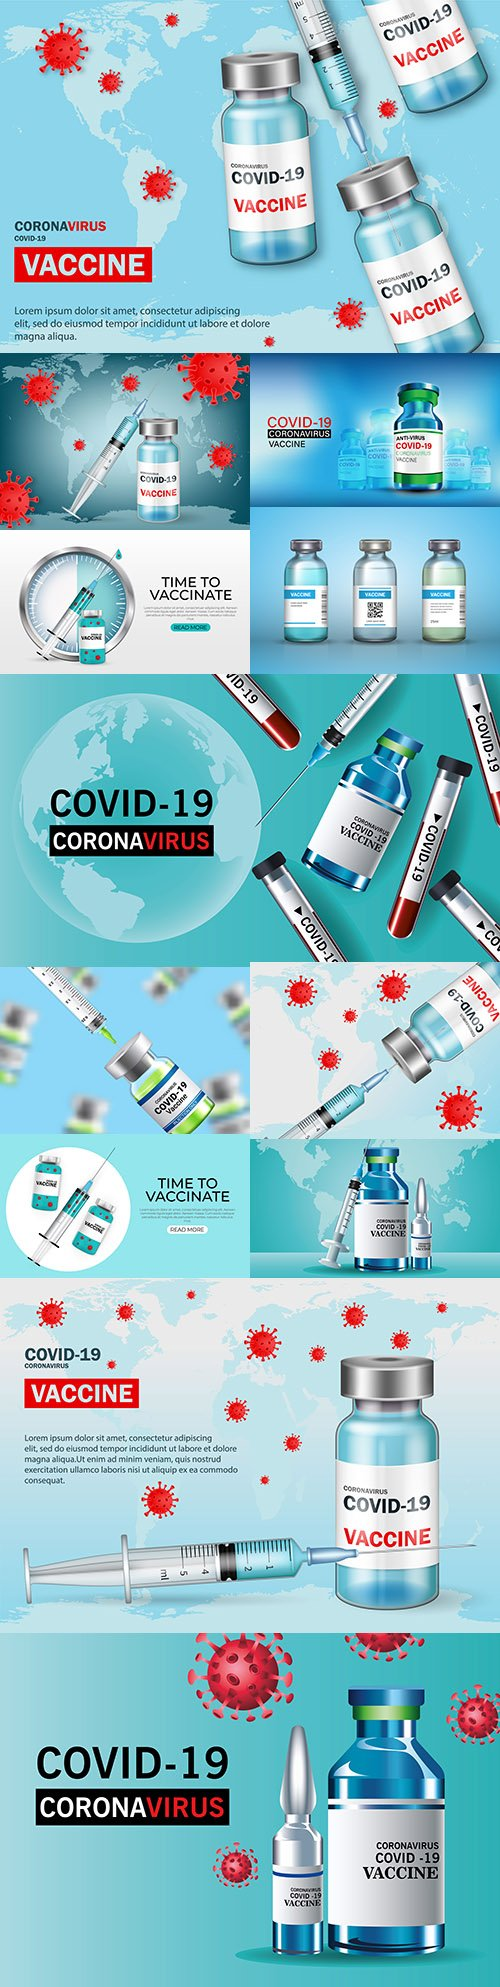 Vaccination against covid-19 vaccine bottle and injection tools 3d realisti